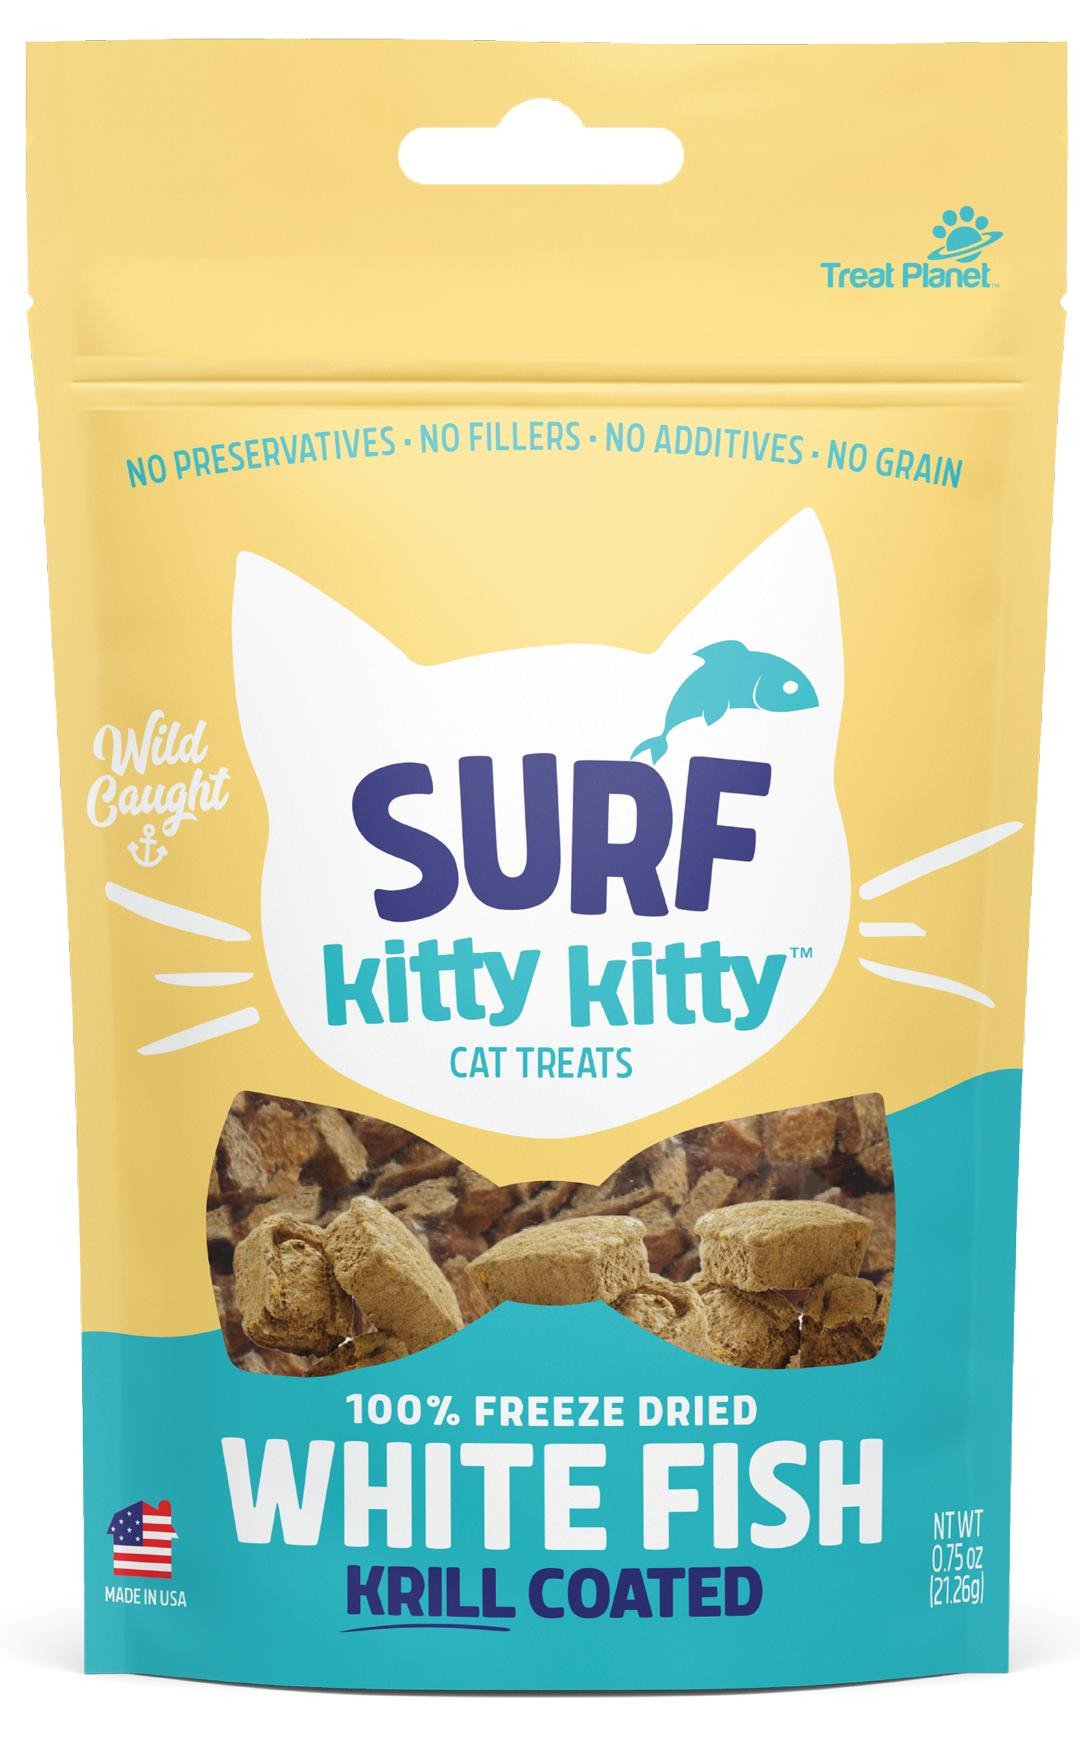 Surf Kitty Kitty Freeze Dried White Fish Cat Treats with Krill Coating Image